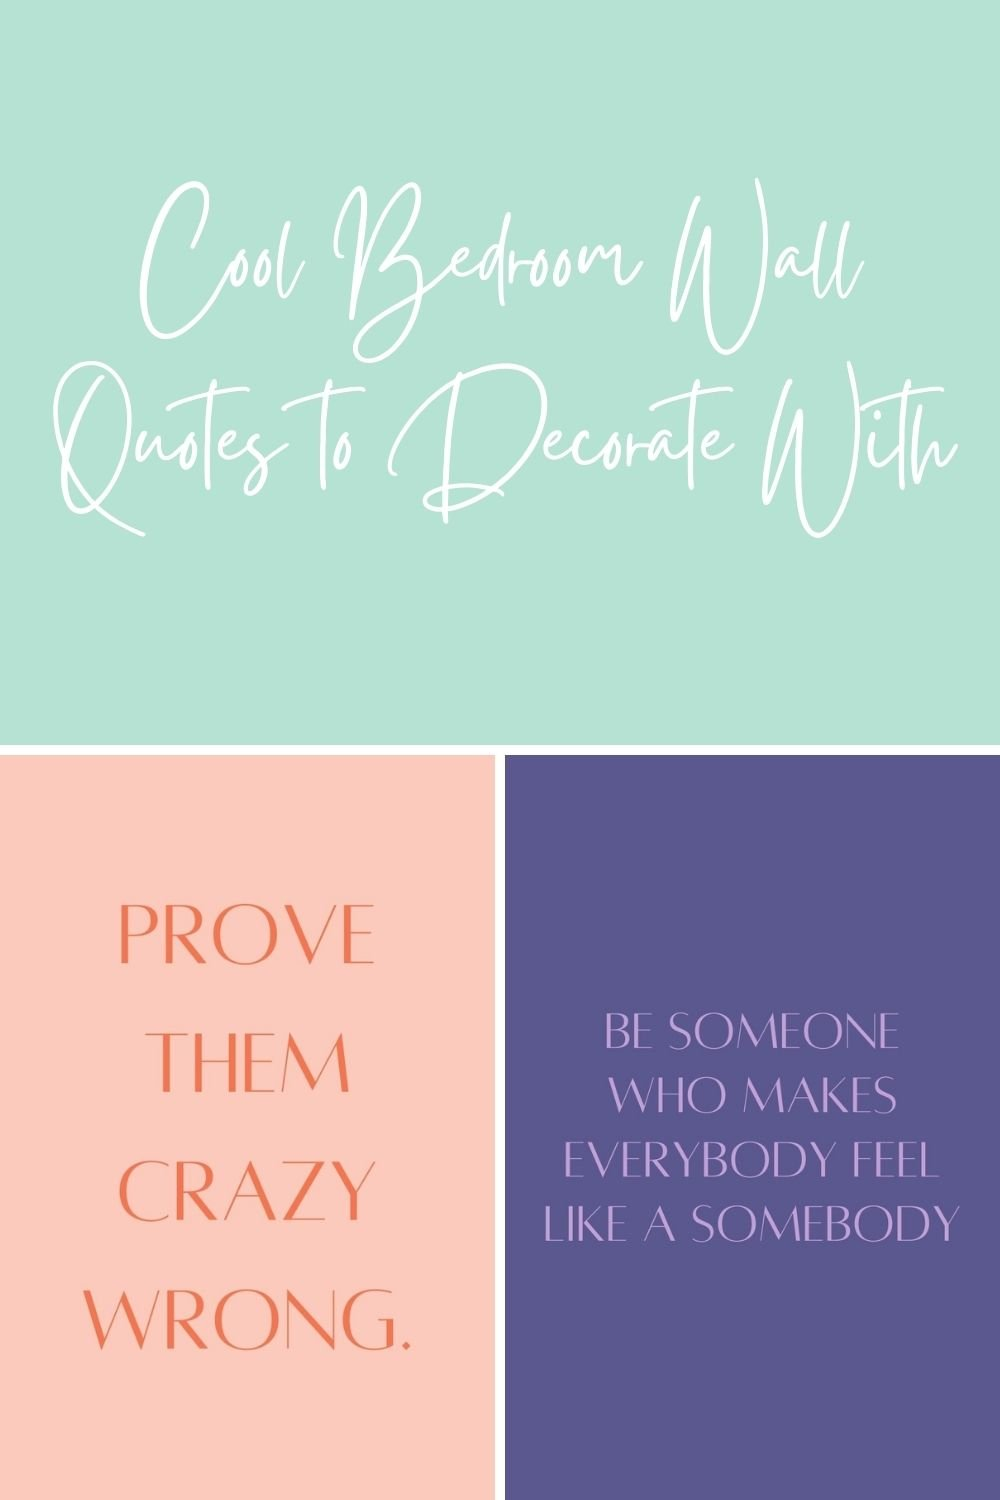 Cool Bedroom Wall Quotes